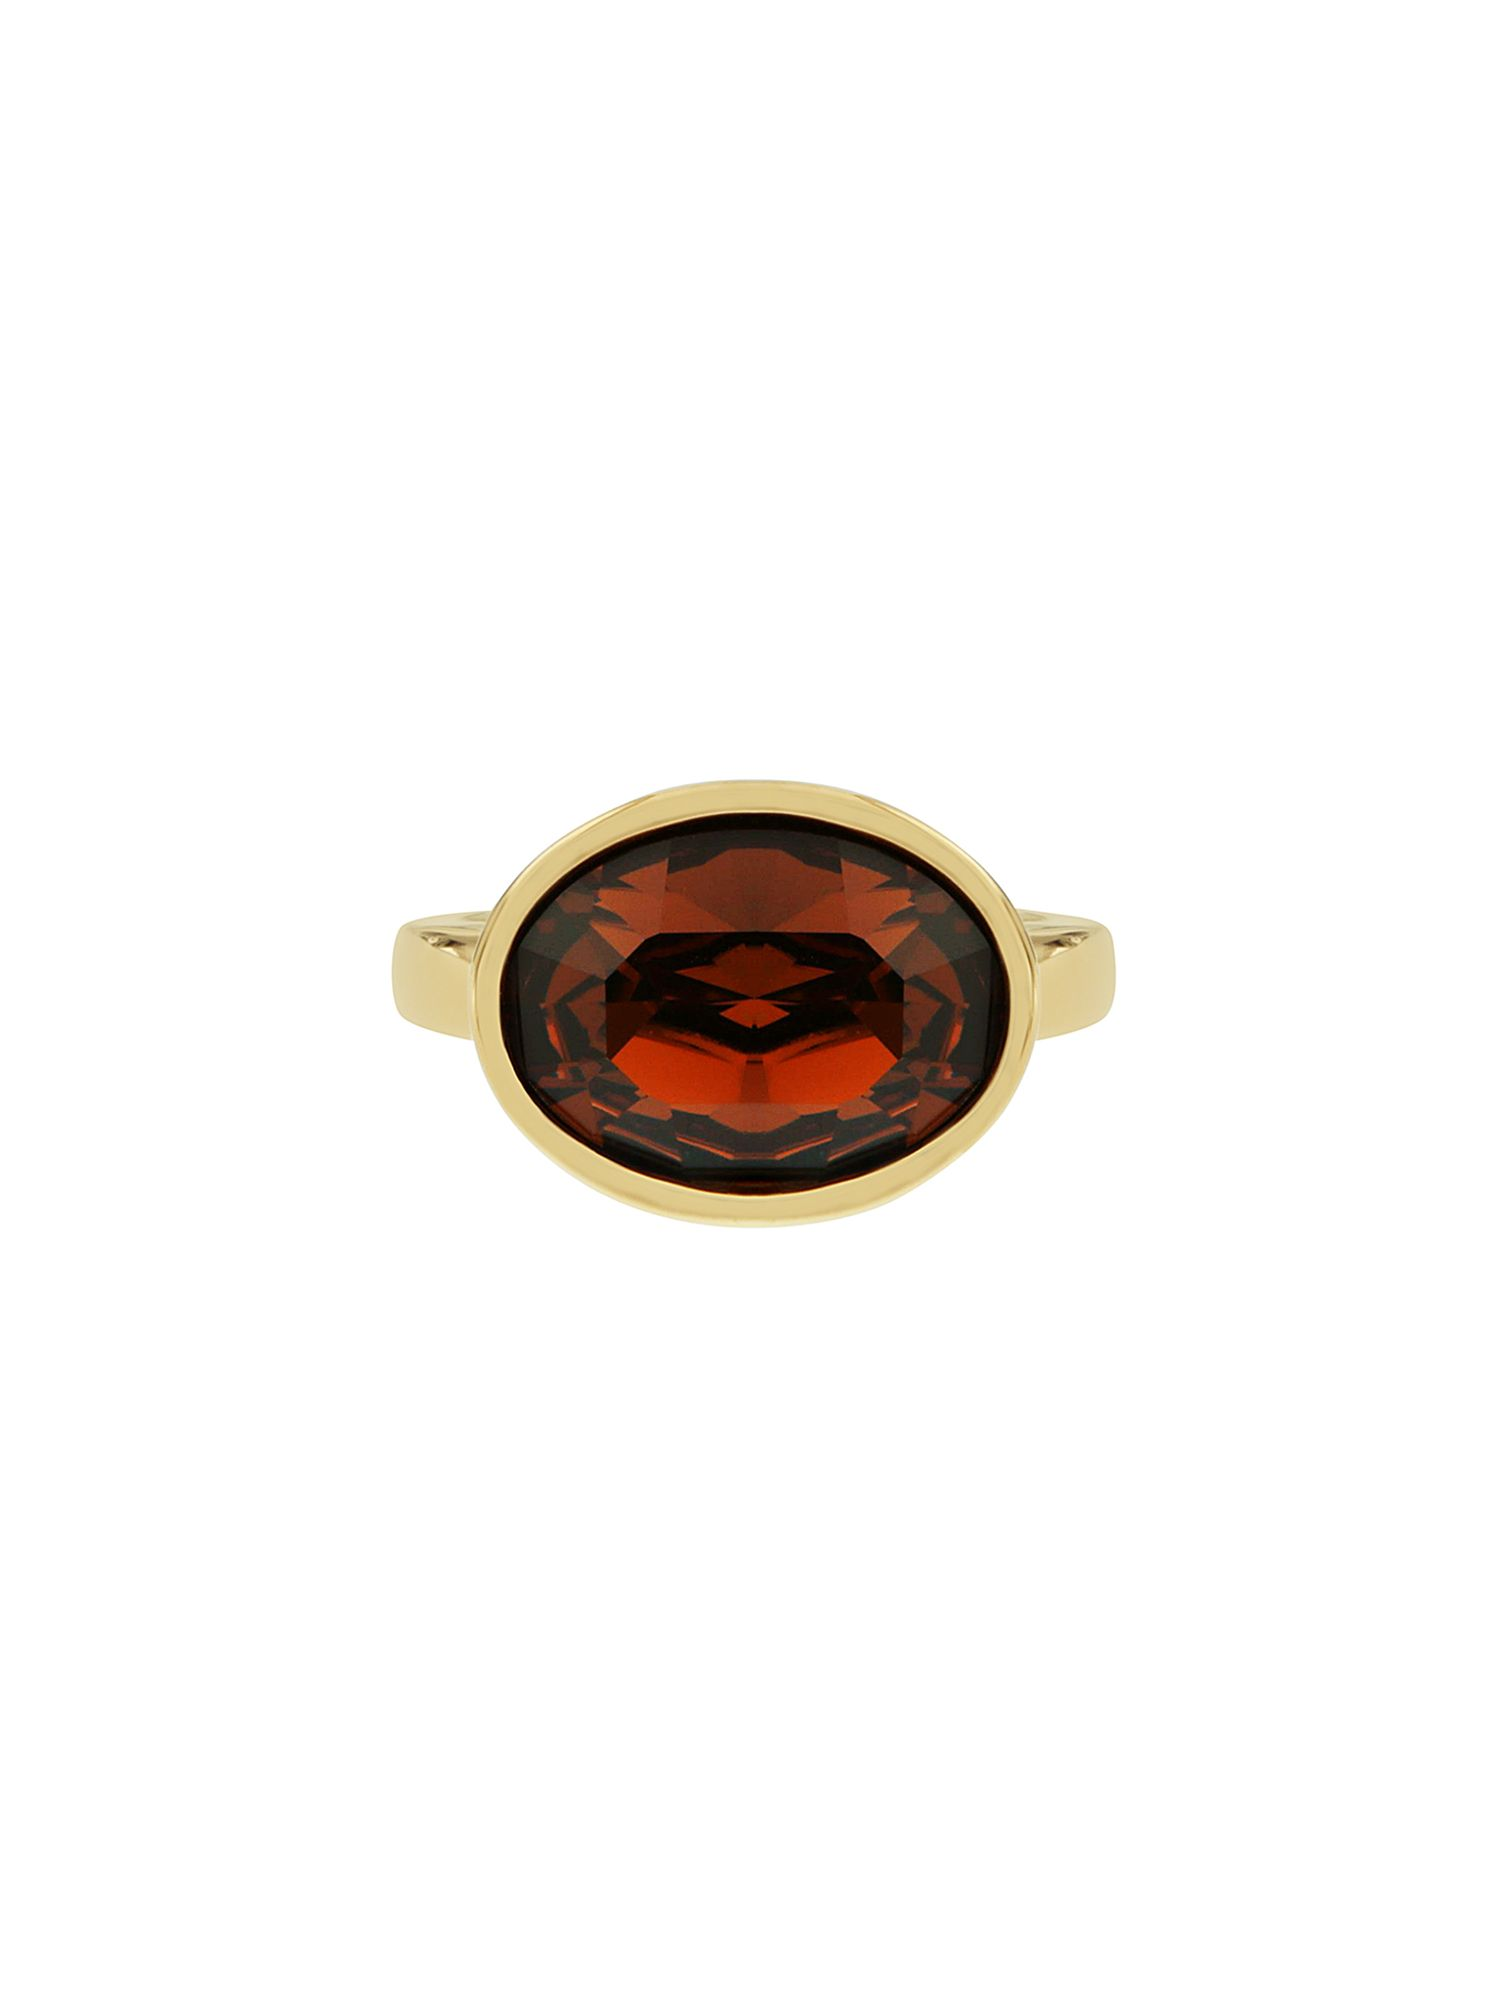 Aurora Flash Aurora Flash Gold plated oval crystal ring, Gold Yellow